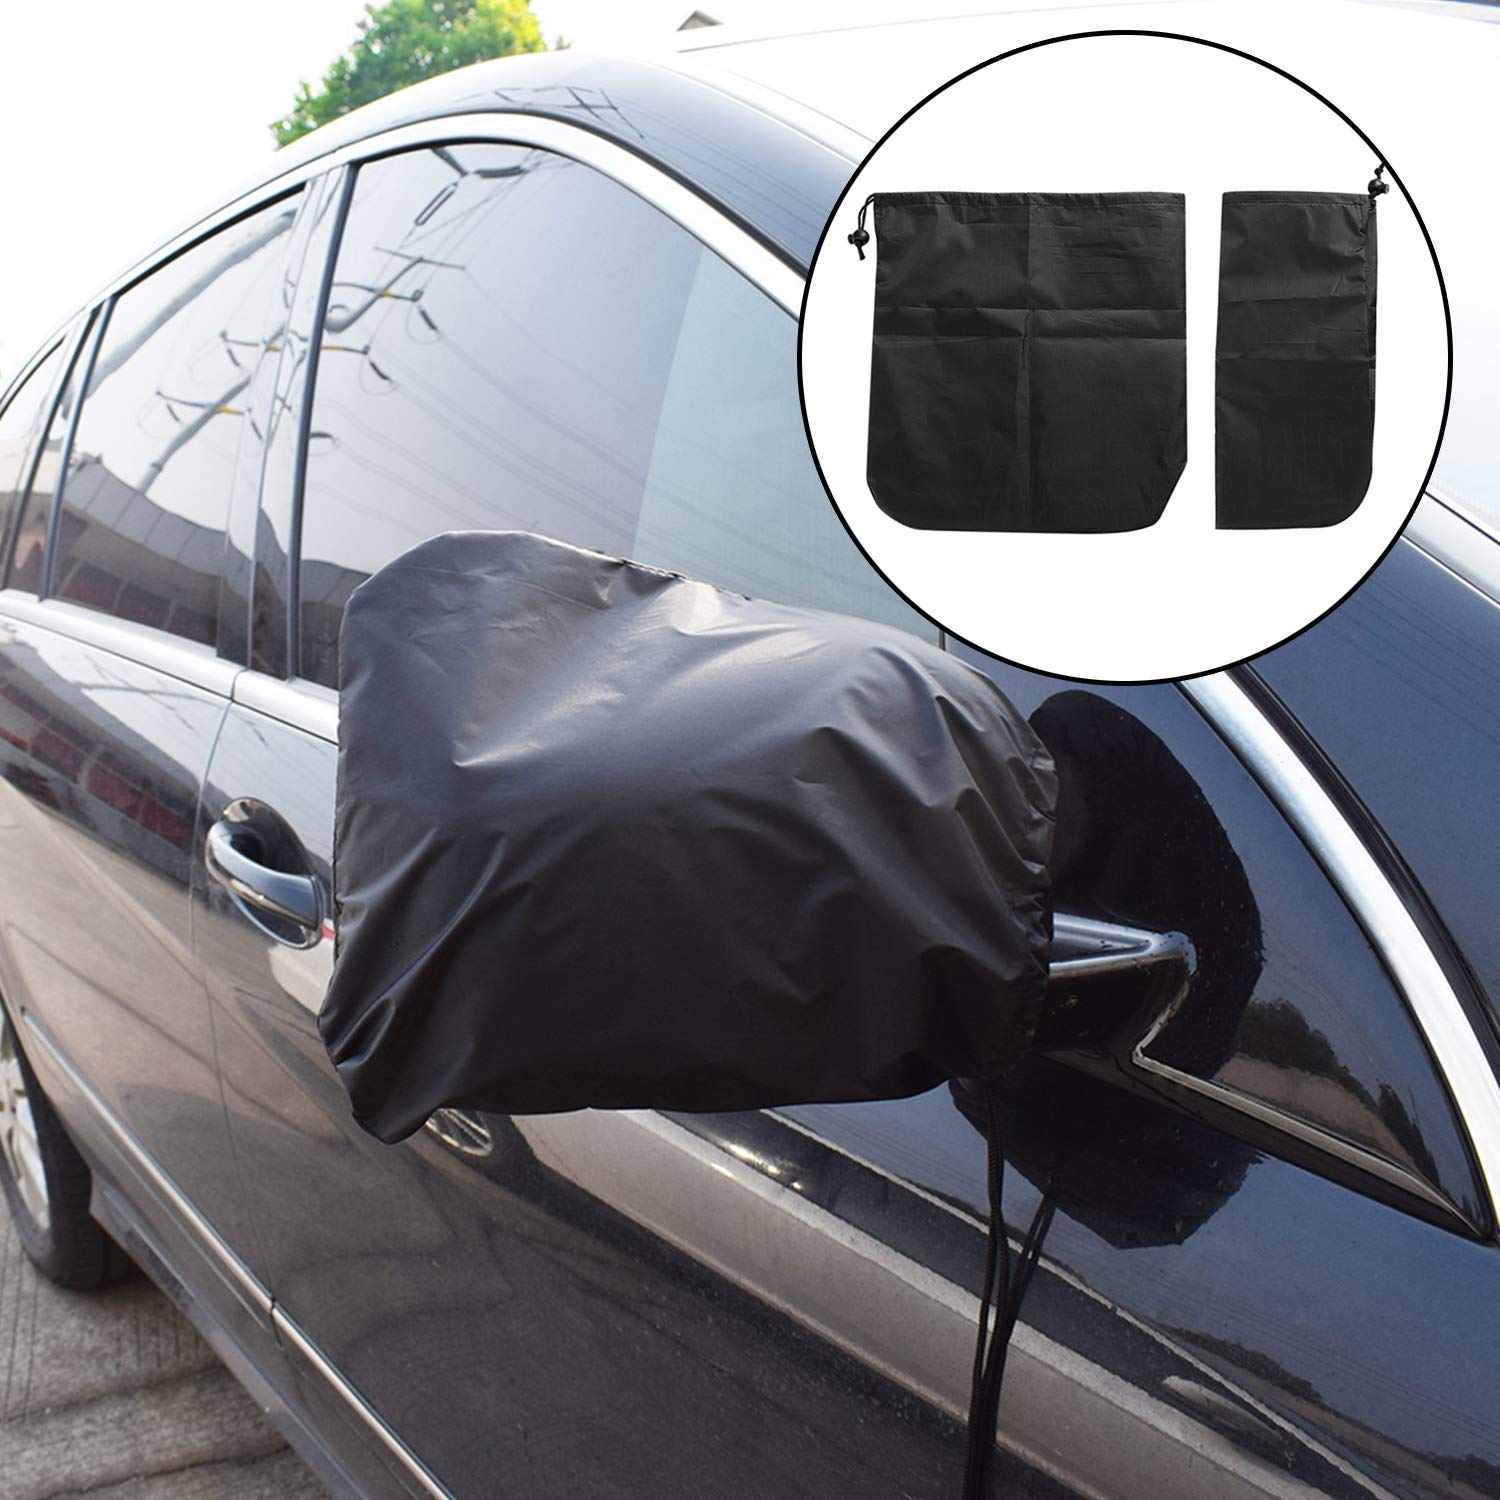 NCElec Mirror Cover for Snow Frost Guard Rear View Mirror Covers Universal for Cars SUV Truck Van,Side Mirror Covers for Cars Anti Bird Droppings 30 X 25cm